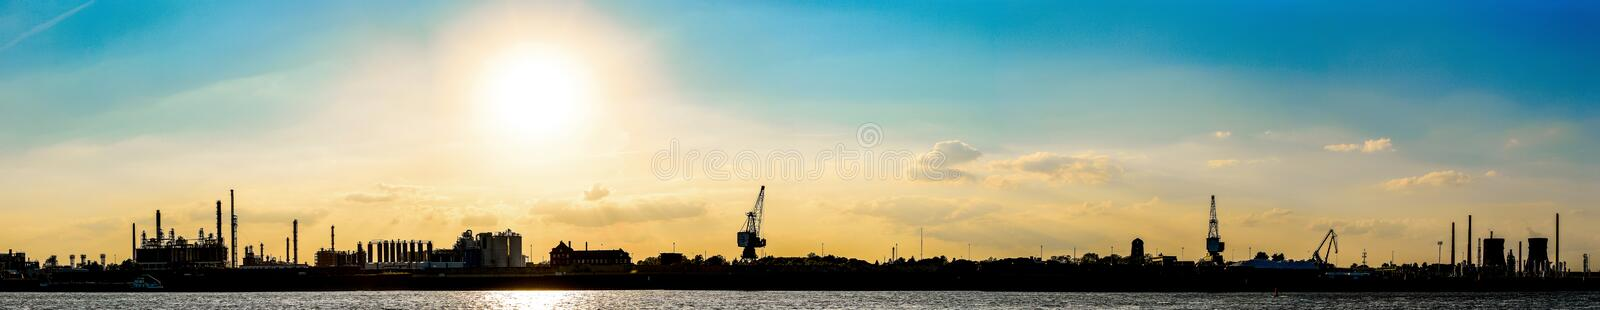 Panorama of Rhein River at Cologne, Germany at sunset stock image